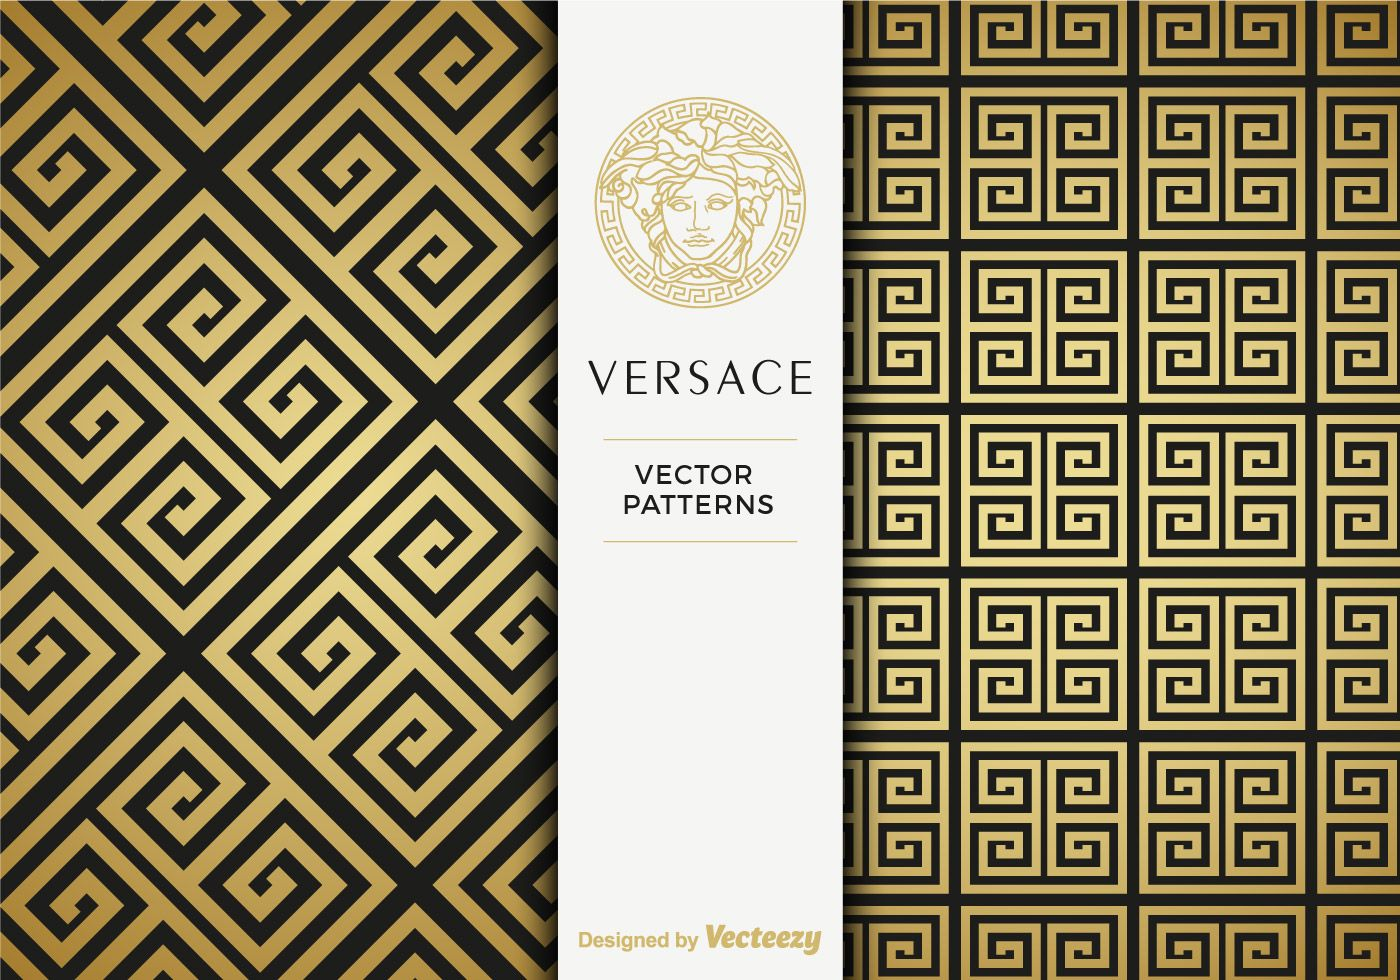 Free Versace Golden Vector Patterns.